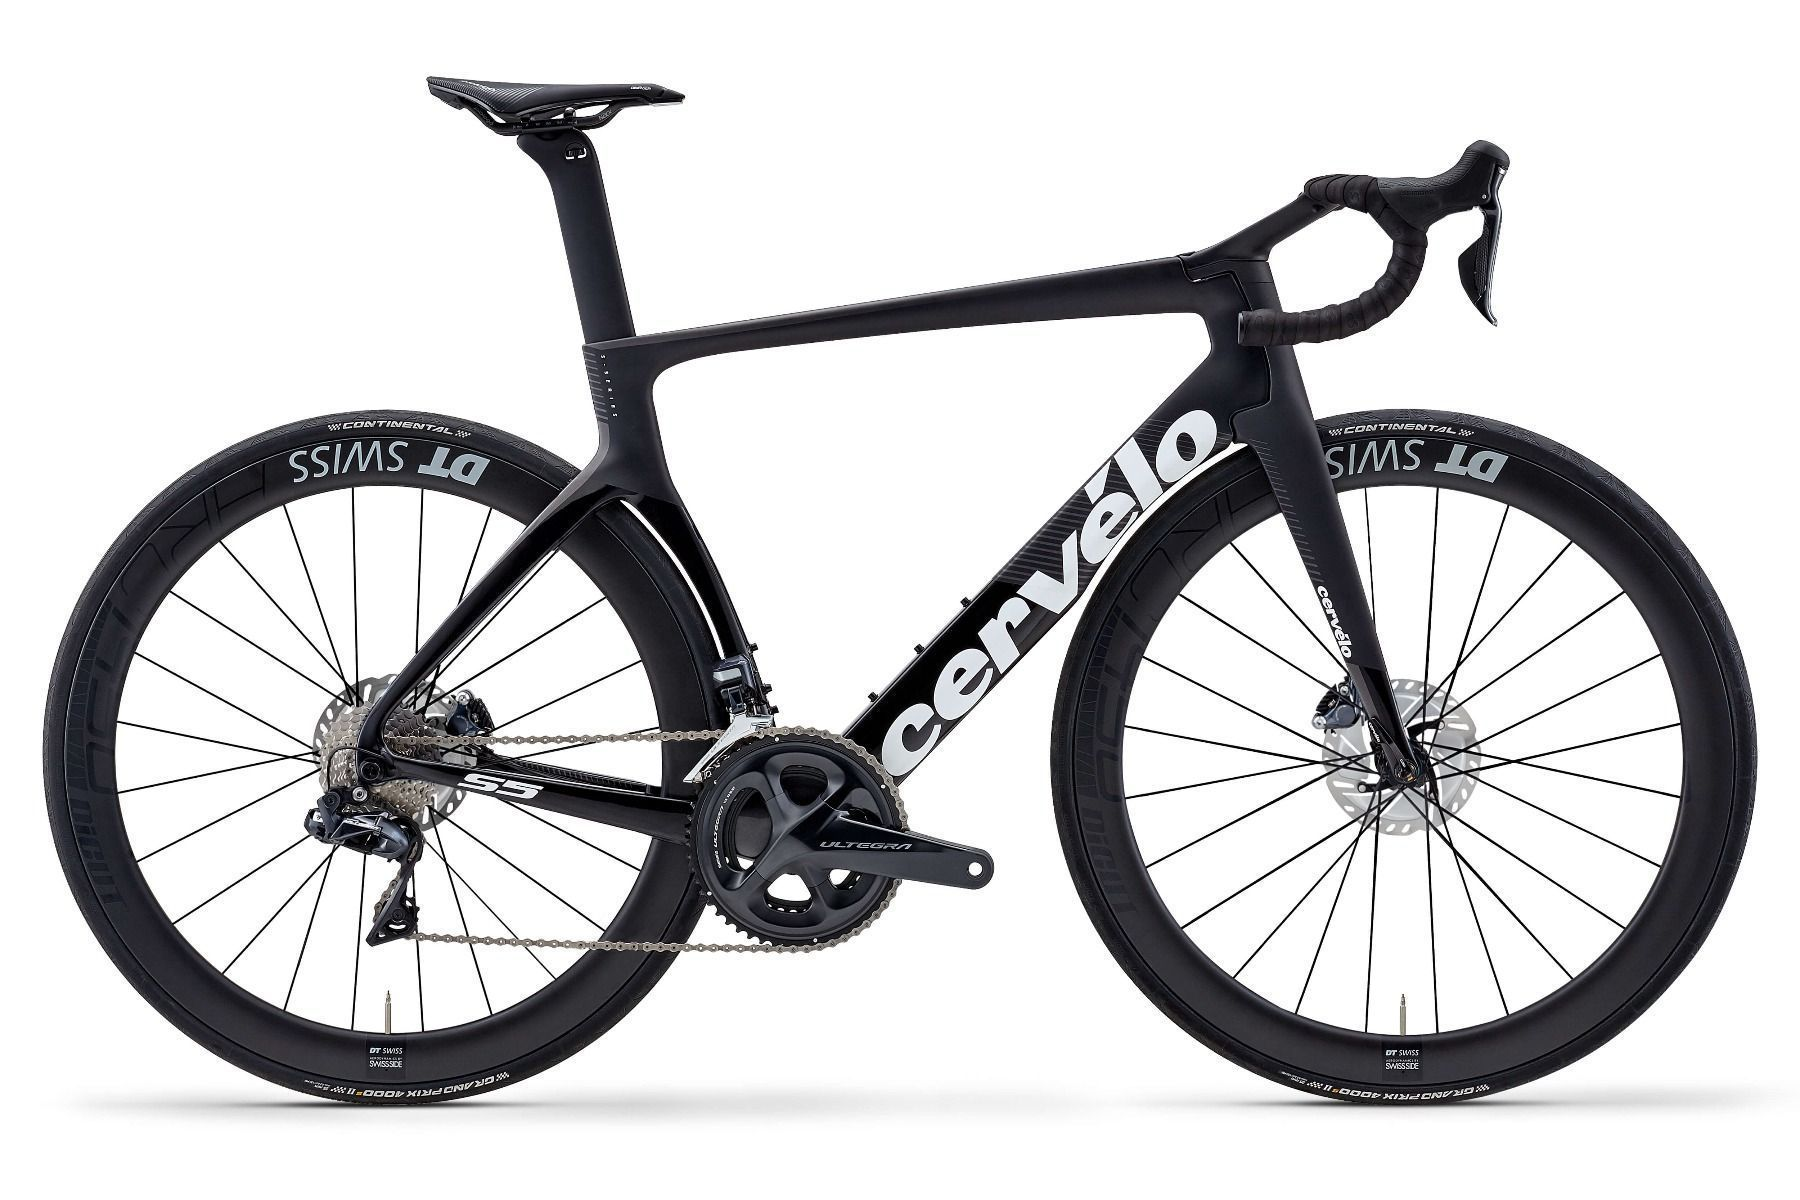 2019 Cervelo S5 Ultegra Di2 Cycling Bike Road Bikes Bicycle